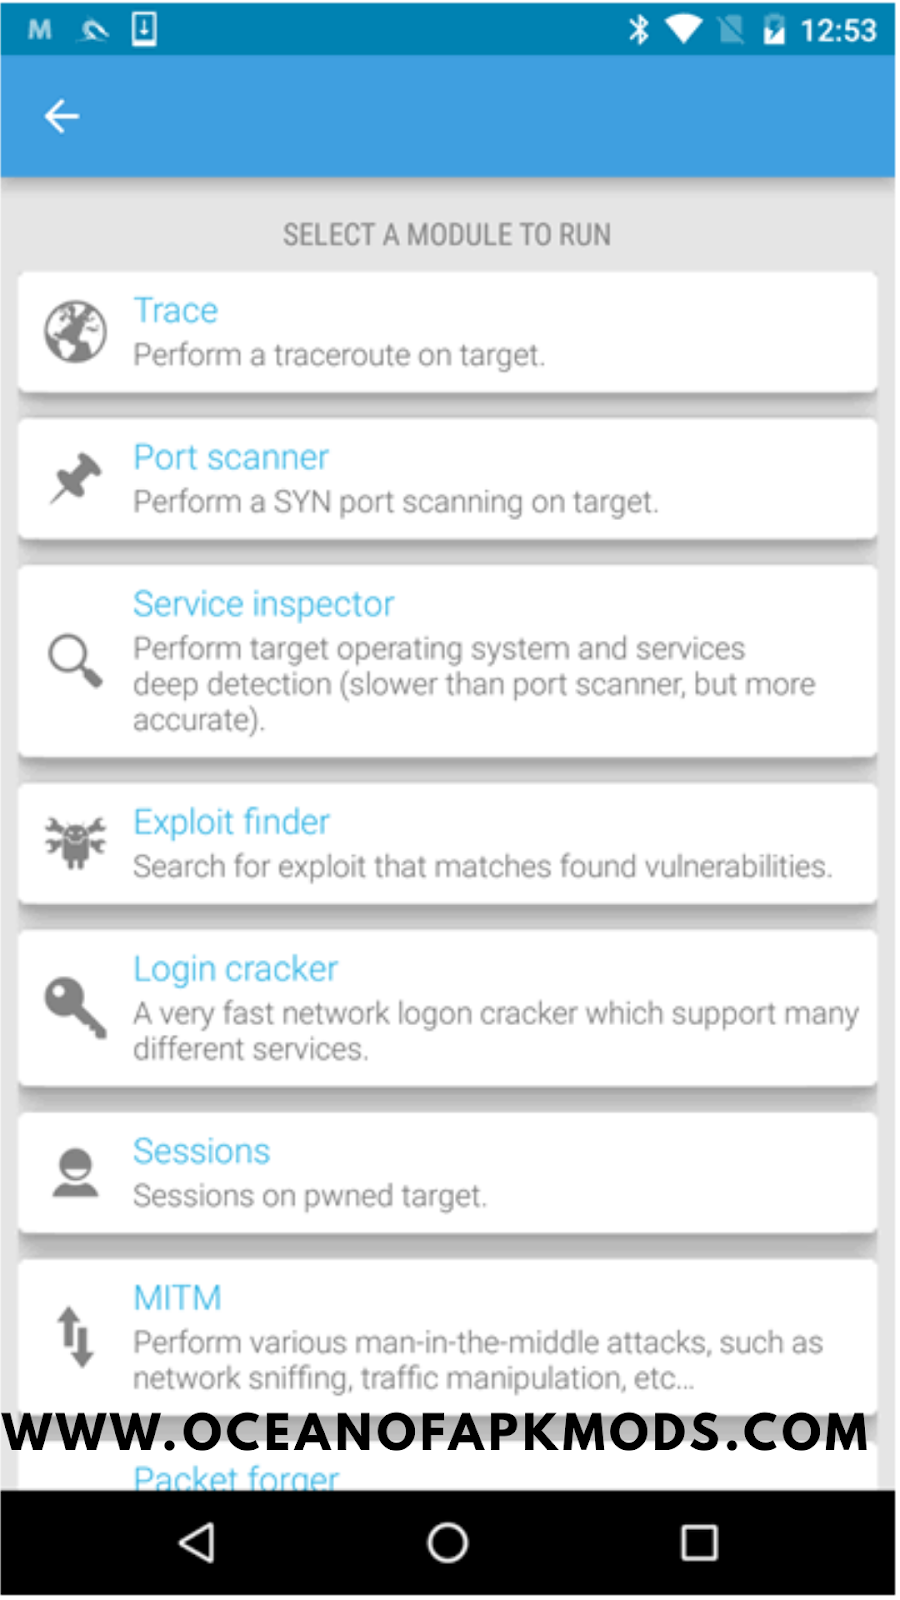 cSploit | Advanced Hacking Tool for Android | latest version - Ocean